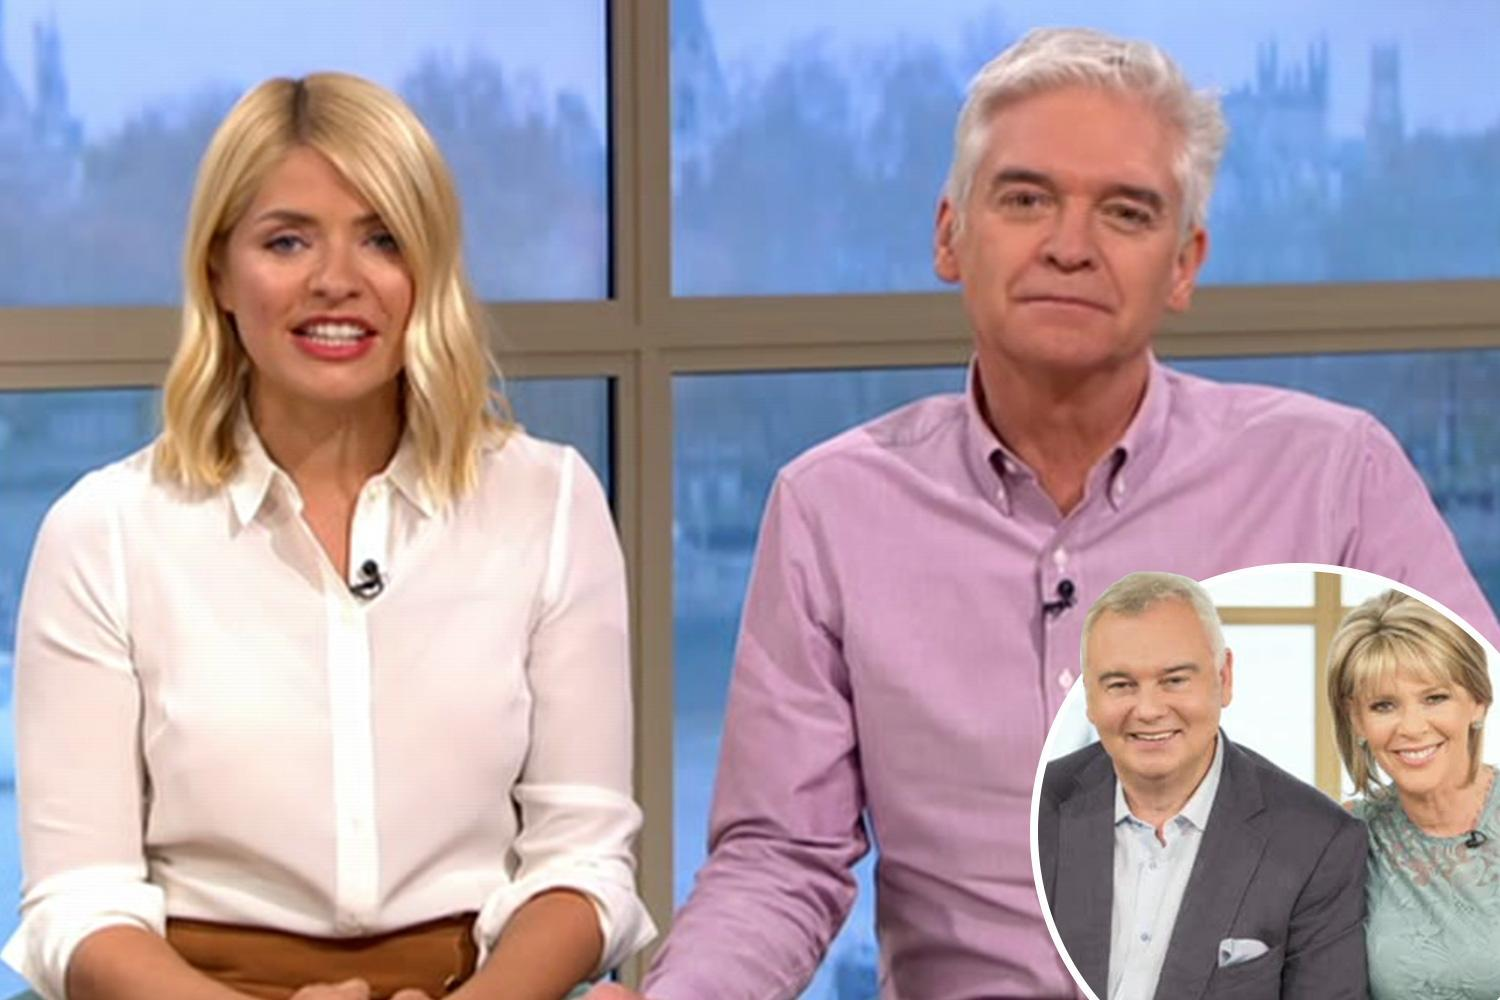 This Morning will air SIX days a week with Ruth Langsford and Eamonn Holmes fronting new Sunday show